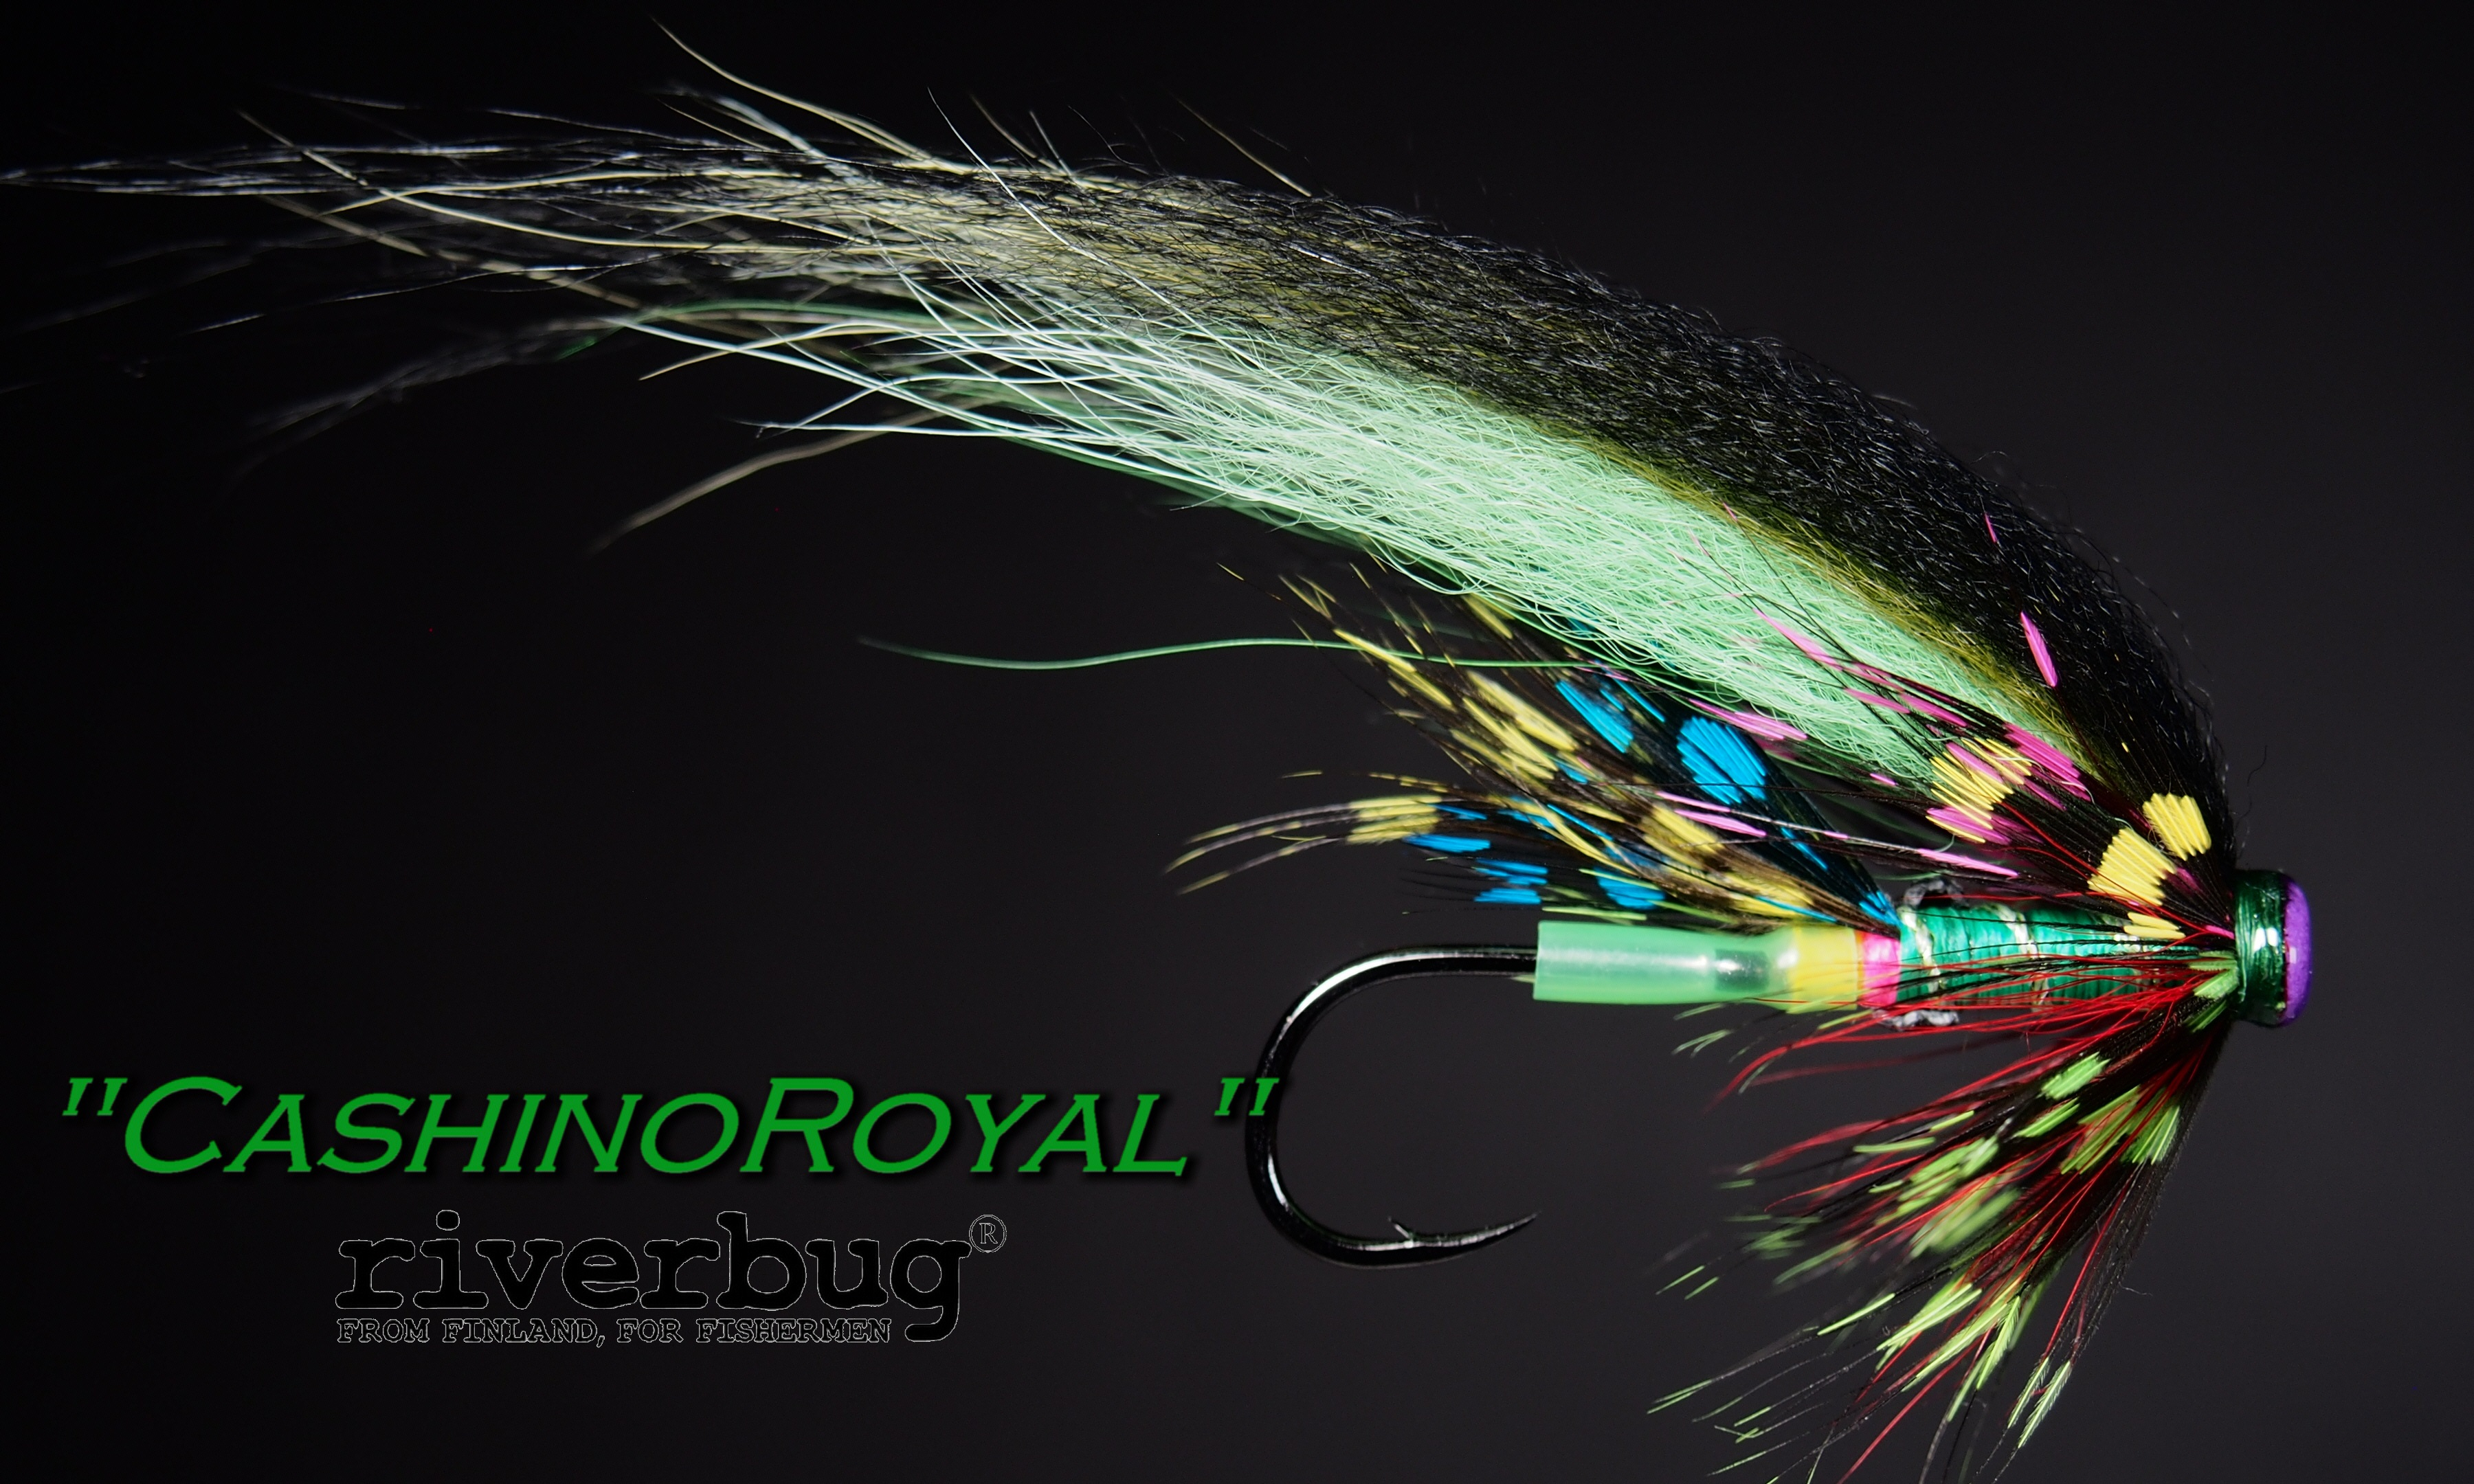 Putkiperho - Tube Fly by RiverBug. #casinoroyale #putkiperhot #tubefly #riverbug #salmonfly #lohiperho #flytying #sample #picture